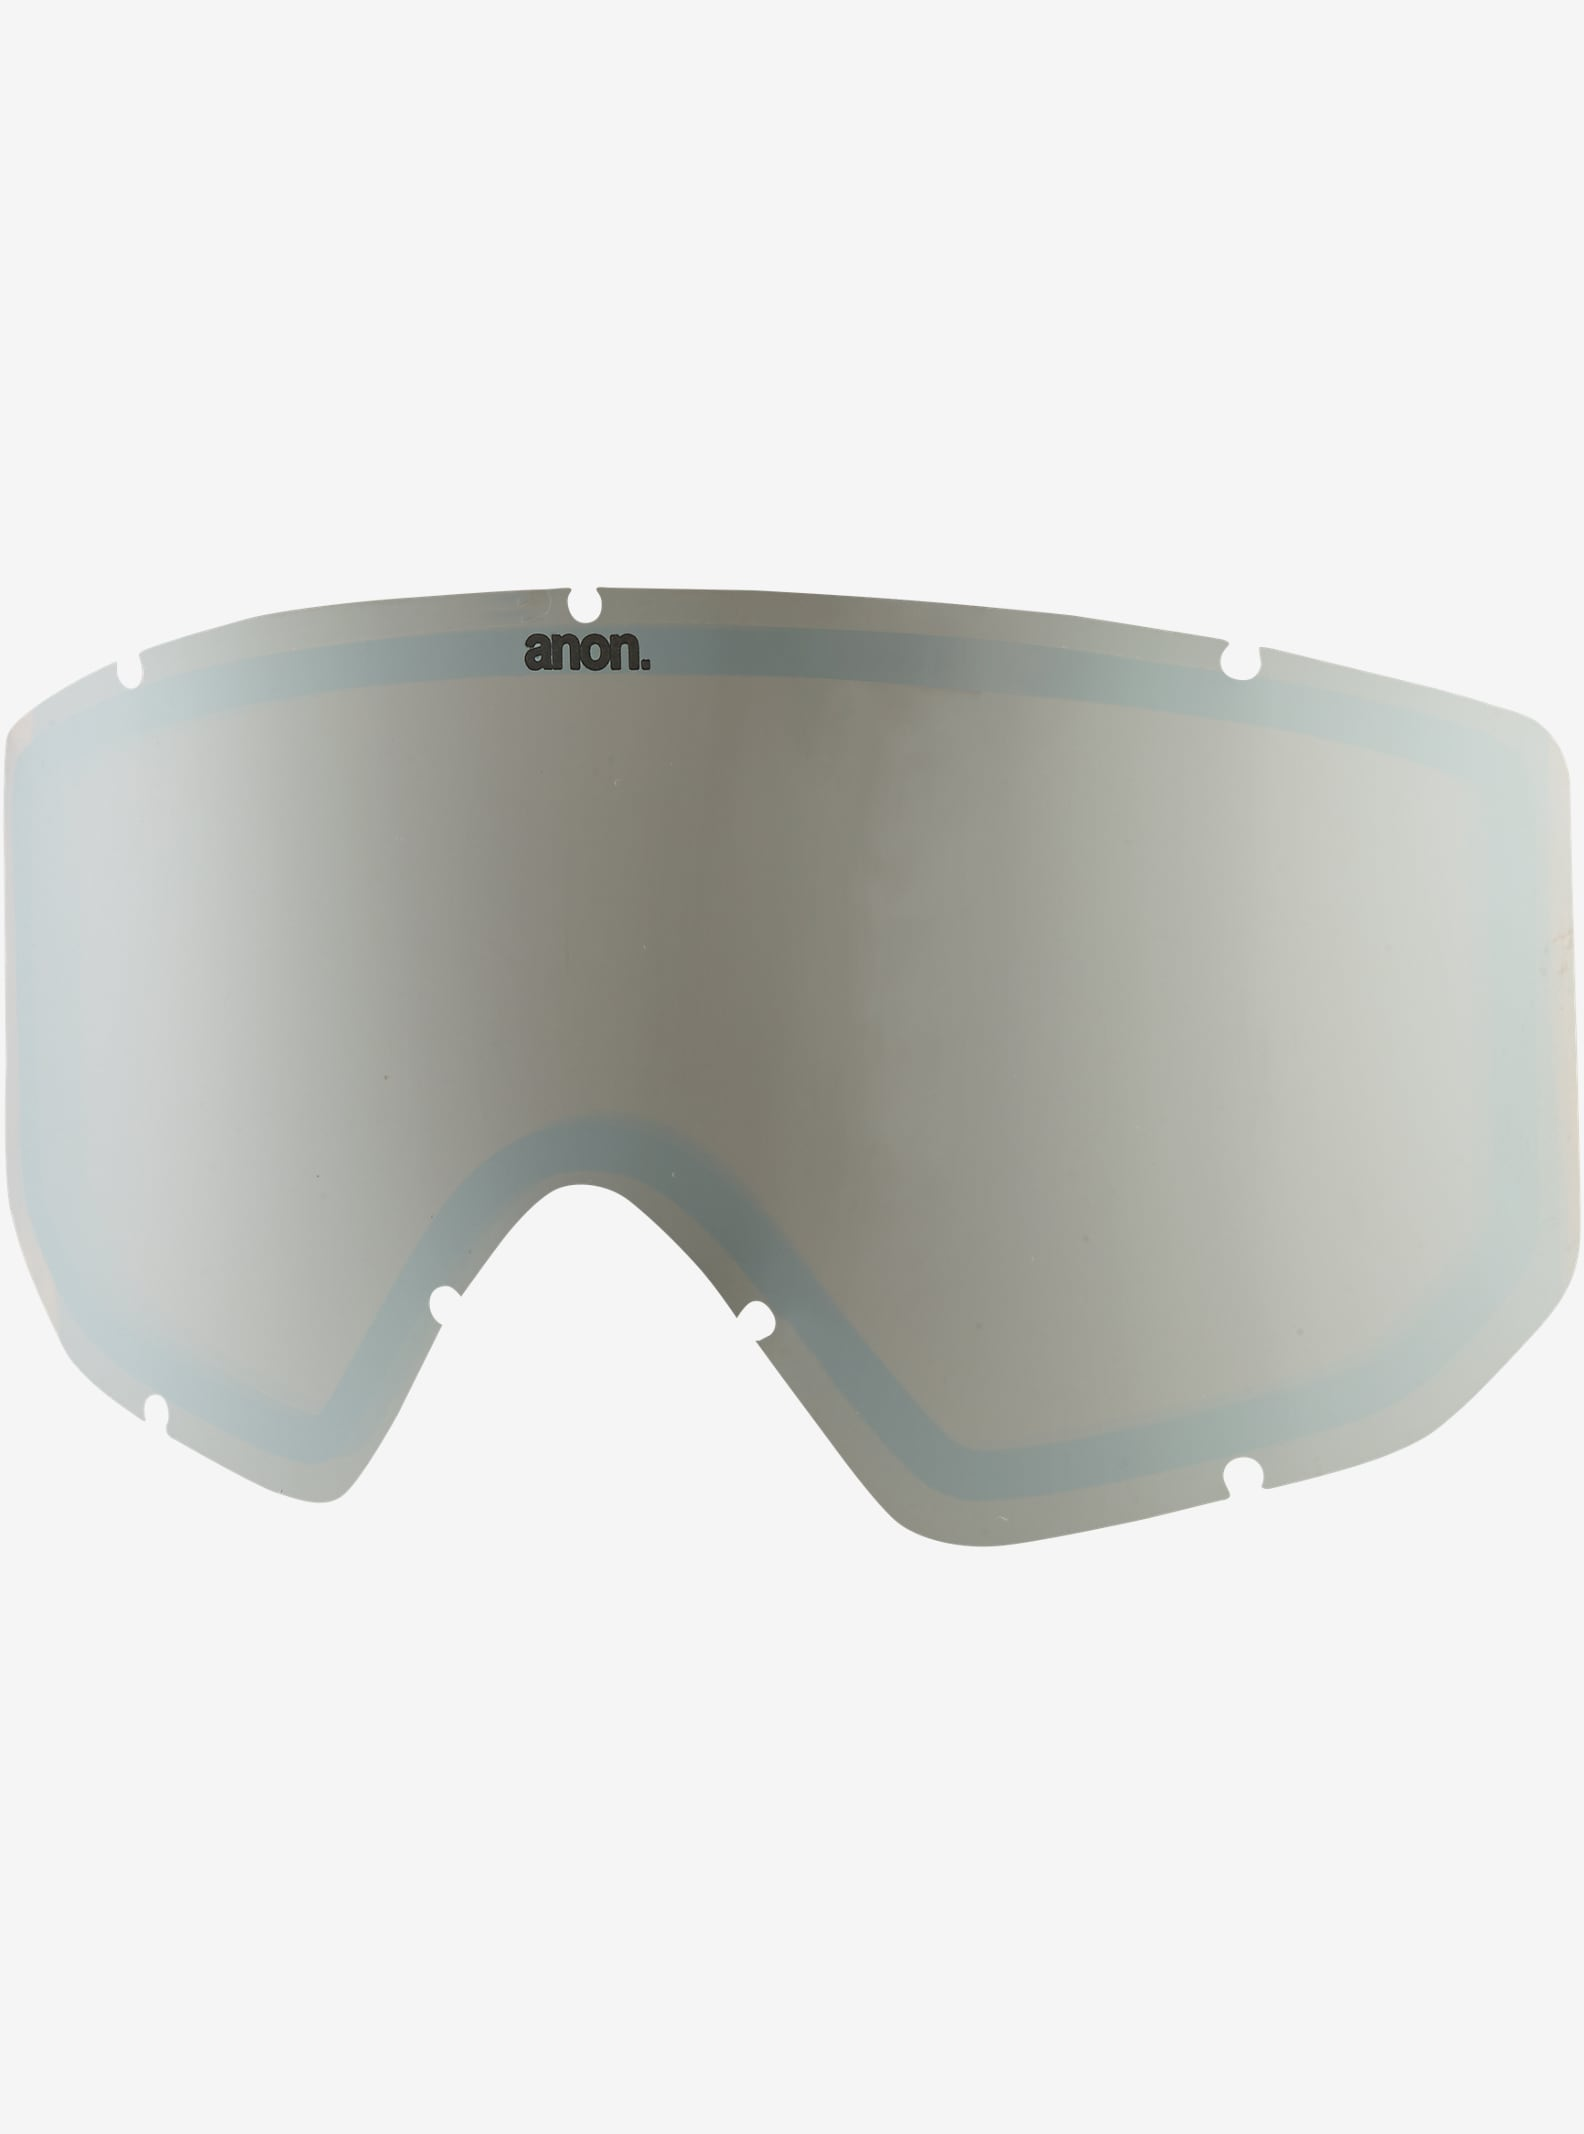 Kids' Anon Relapse Jr. Goggle Lens shown in Silver Amber (35% VLT)